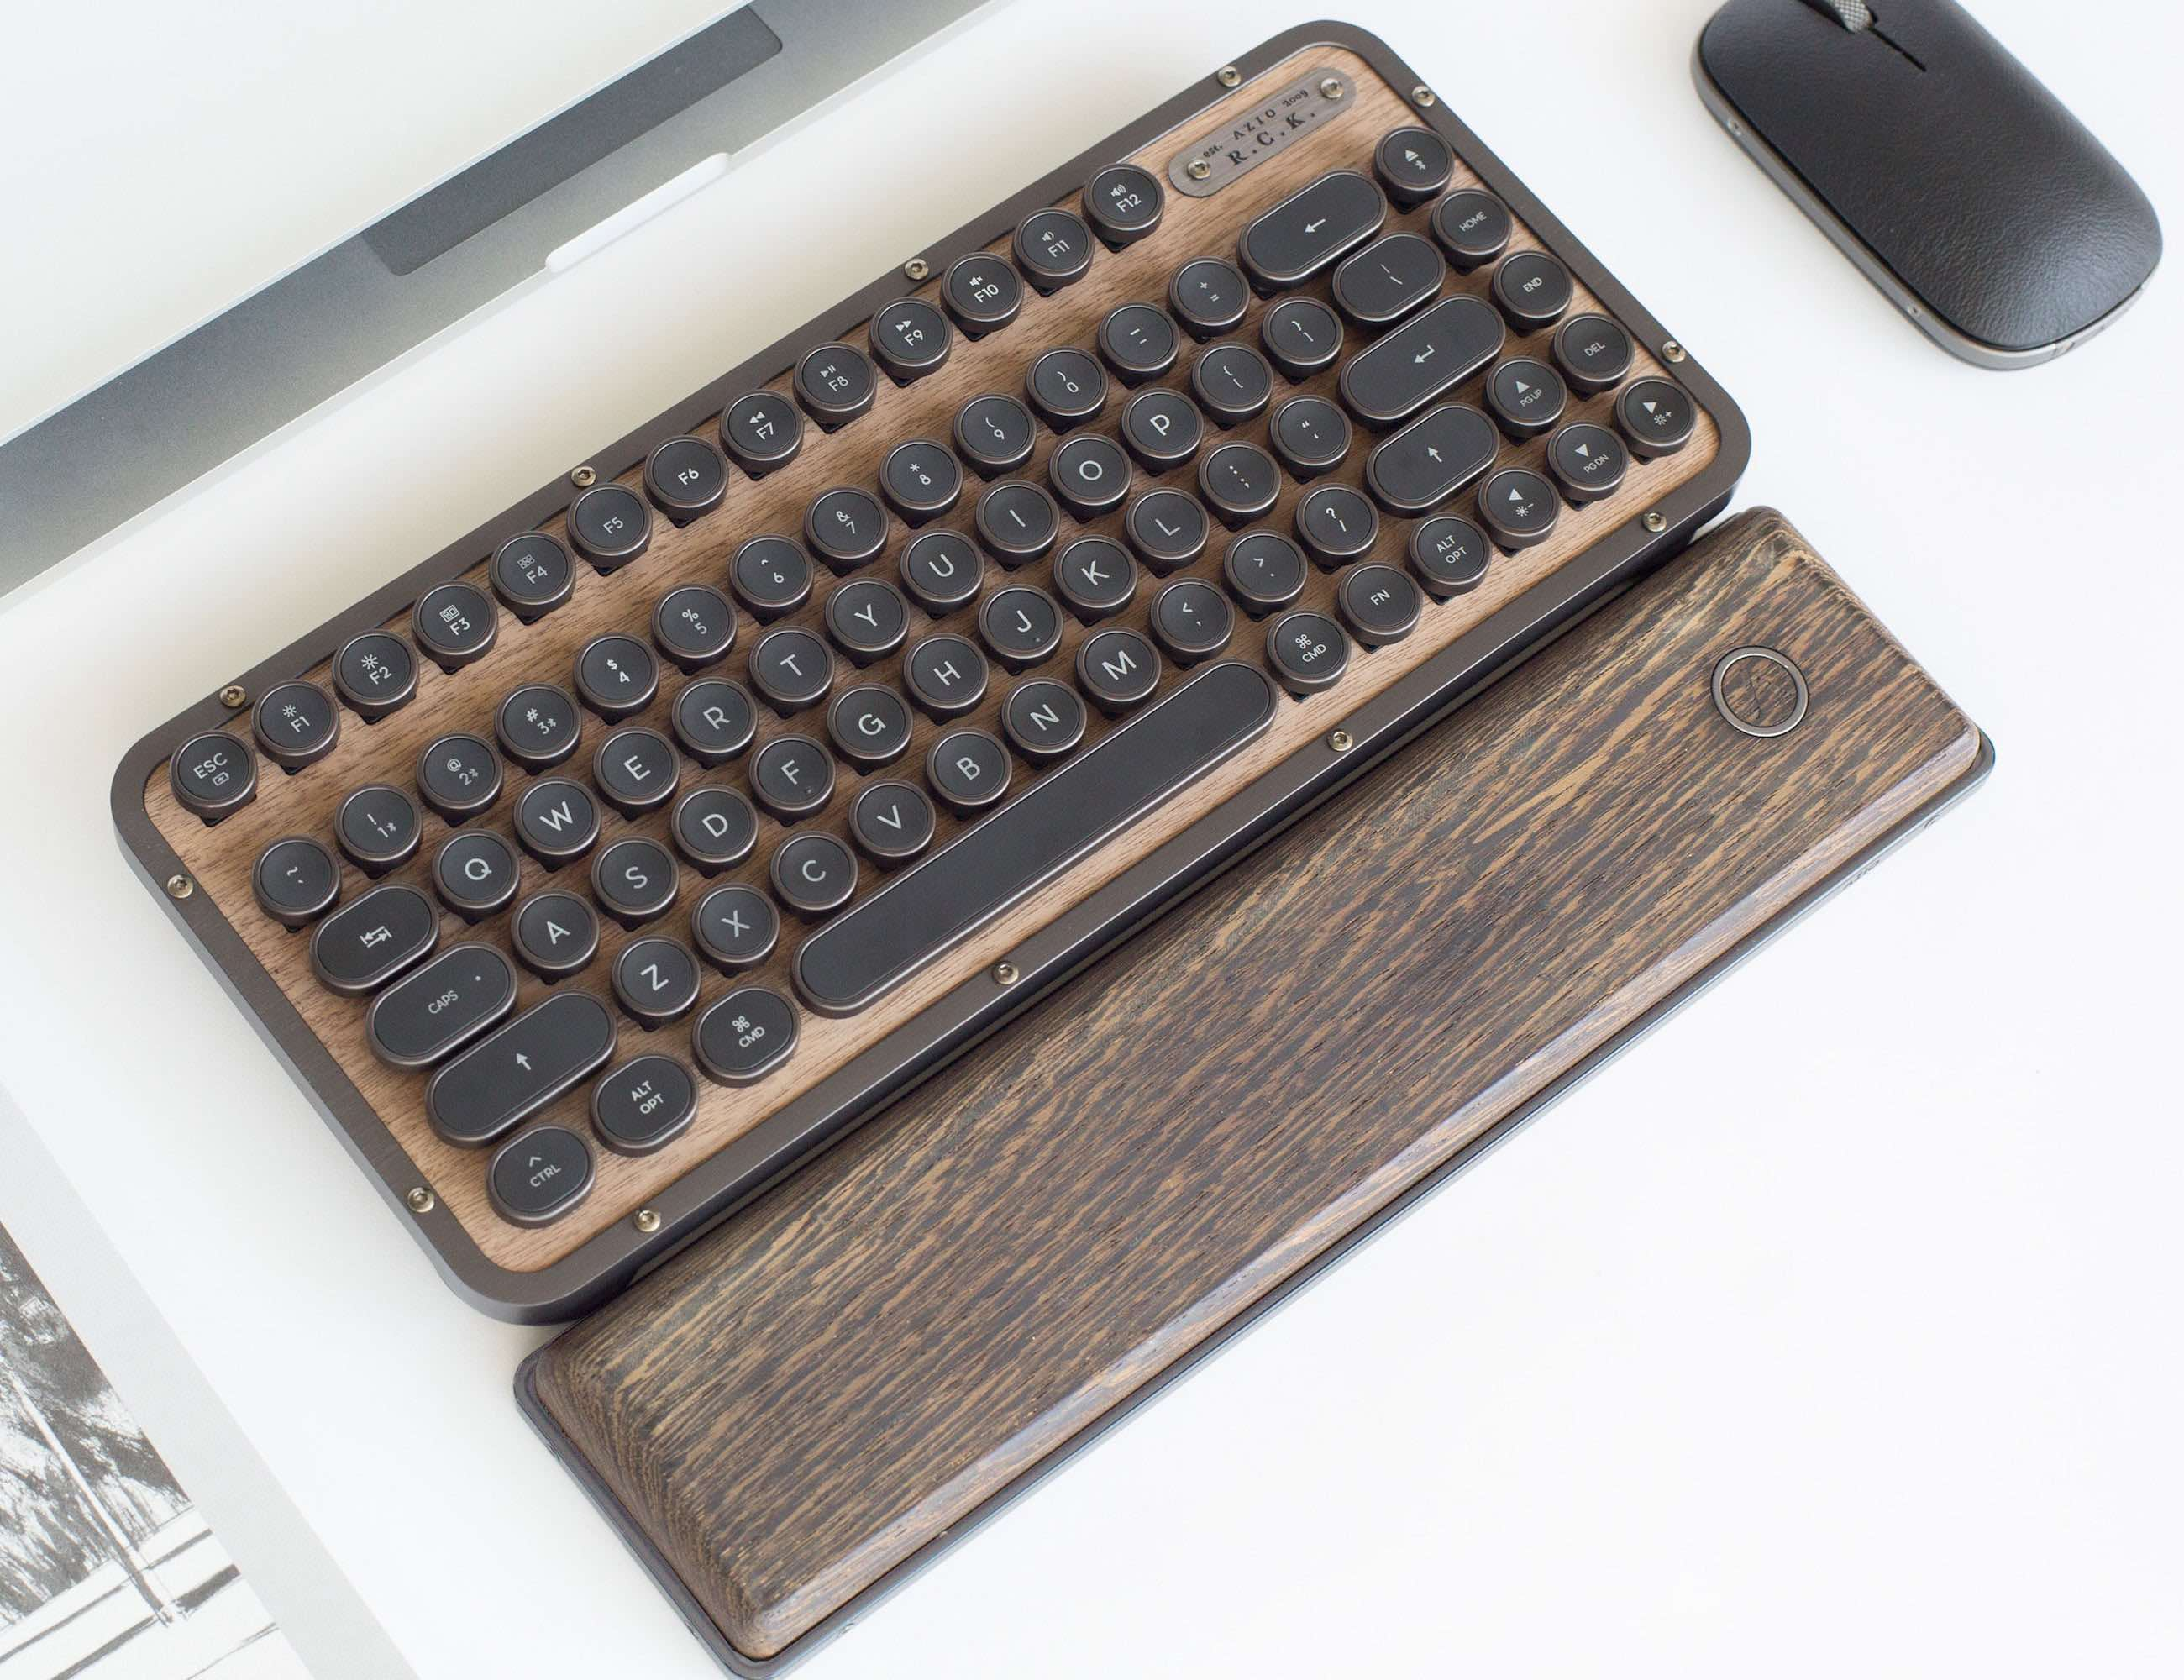 Azio Retro Compact Mechanical Keyboard